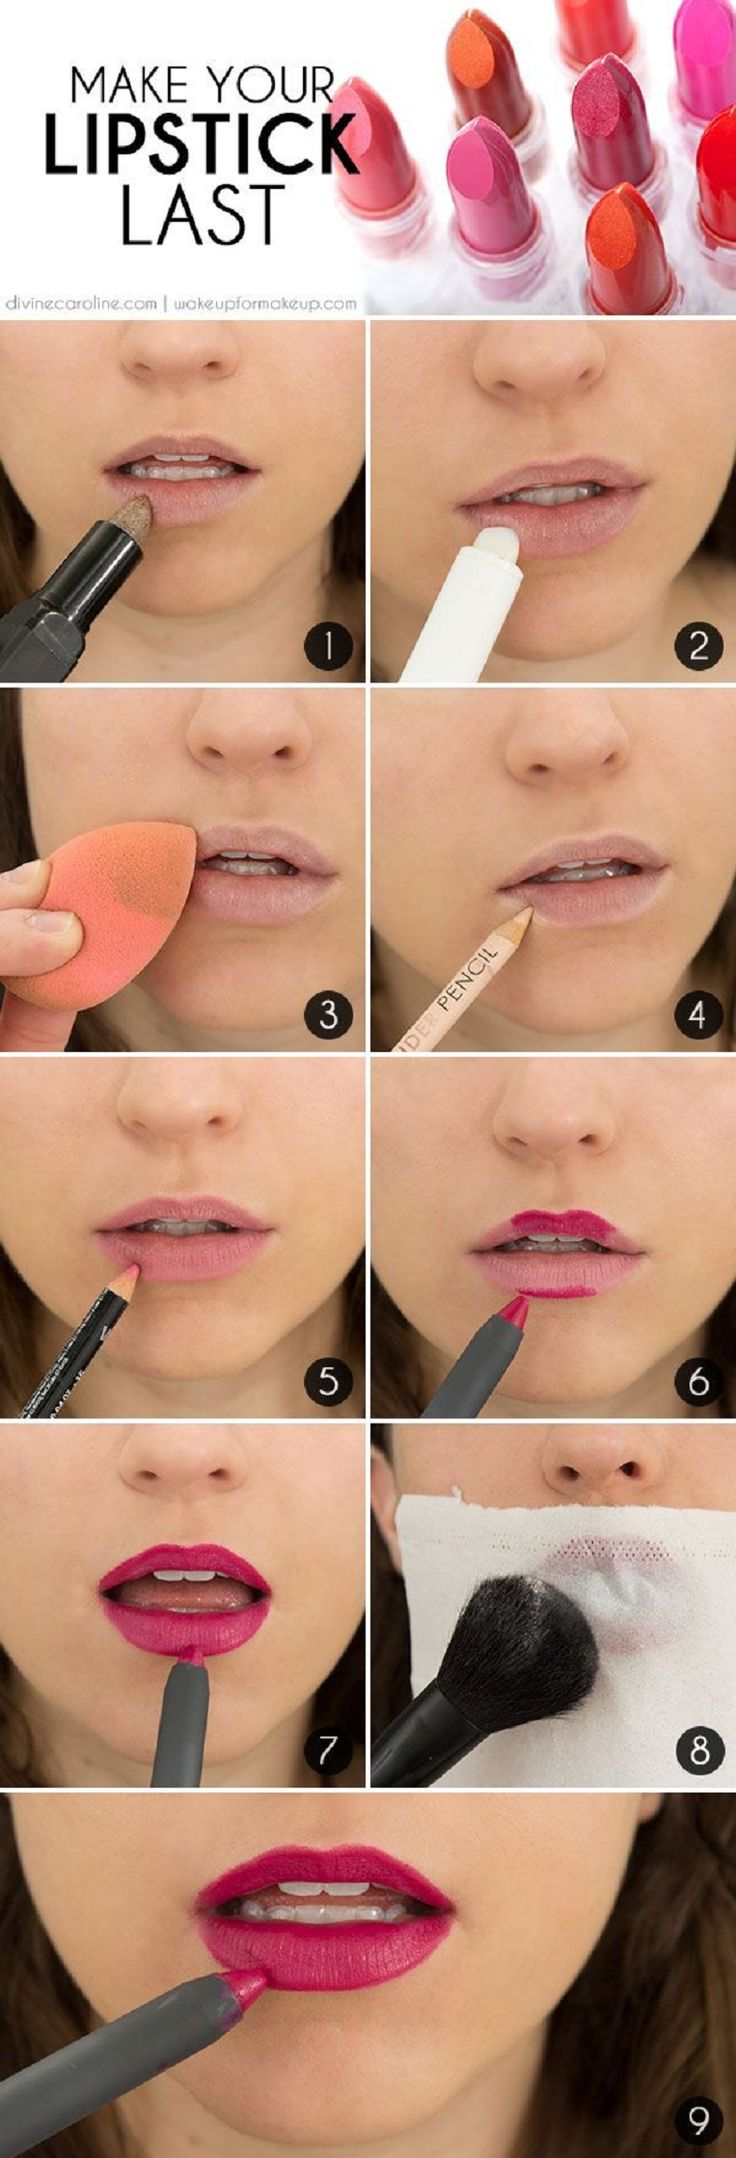 Long-Lasting Purple Lipstick Tutorial - 15 Best Beauty Tutorials for Winter 2014-2015 | GleamItUp⚜BuffyVS⚜